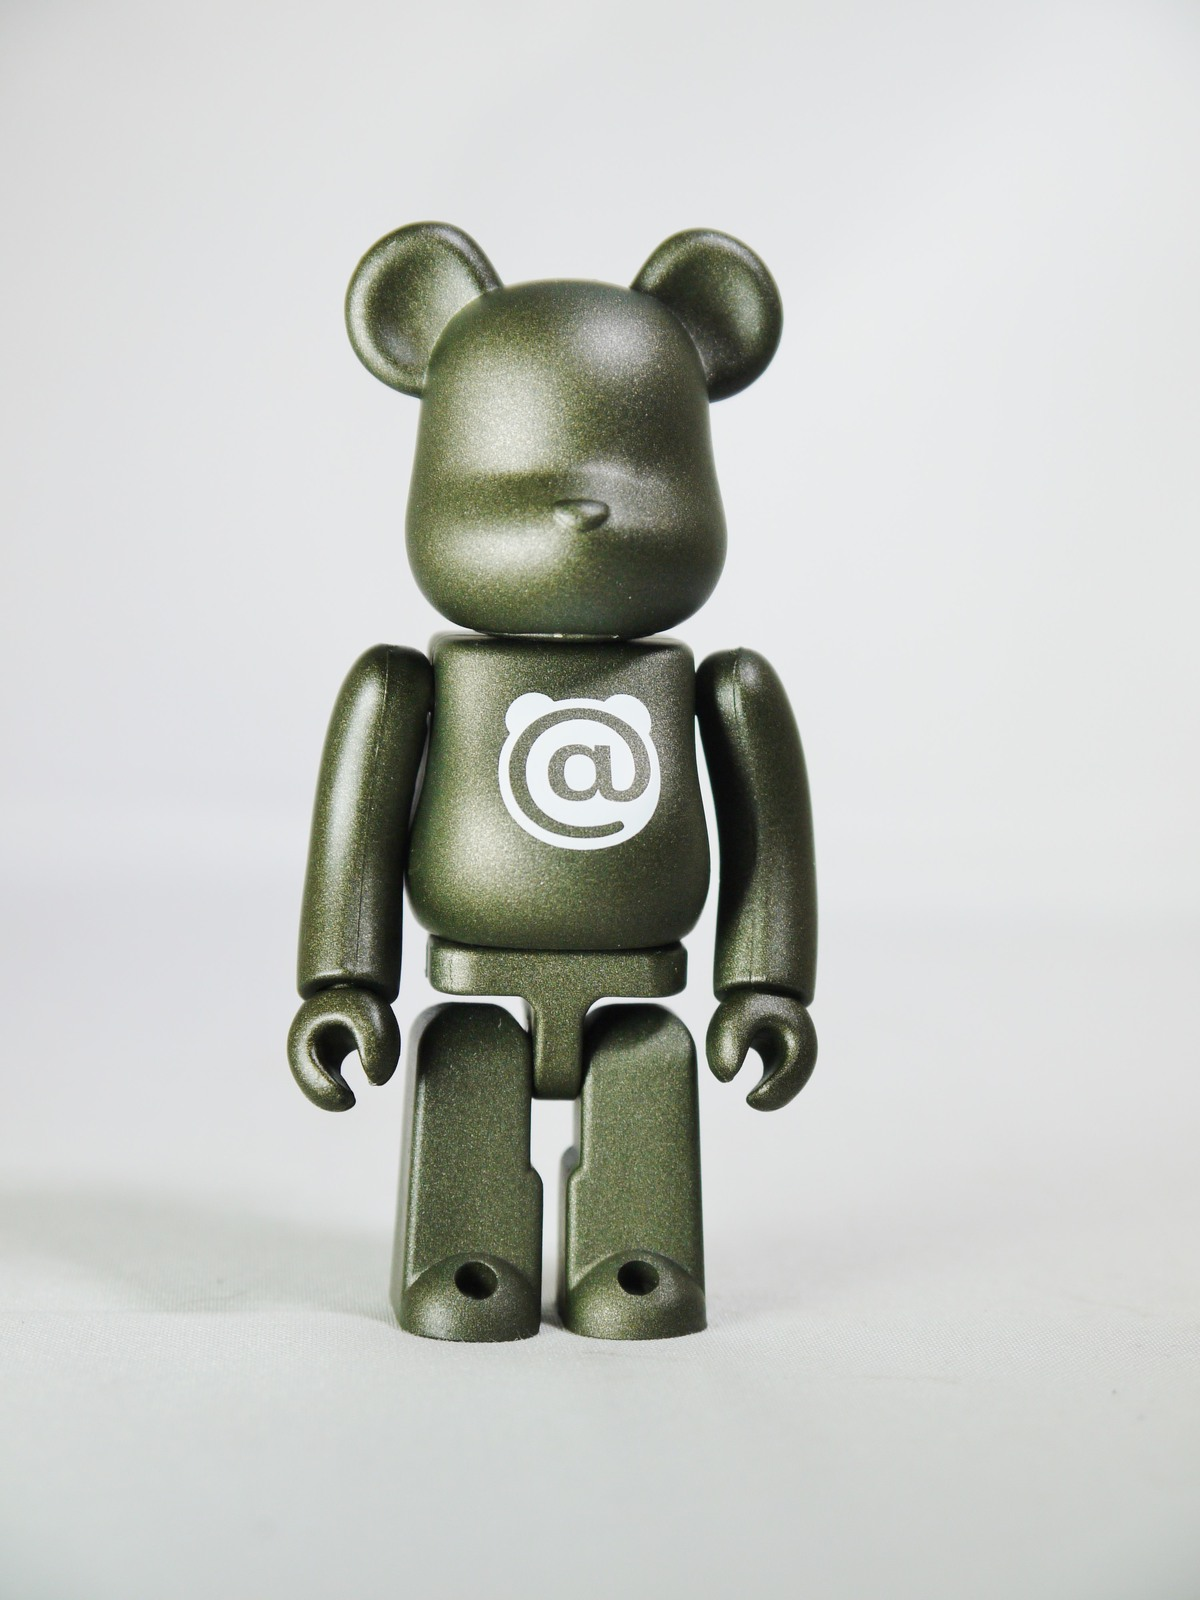 Primary image for Medicom Toy Be@rbrick BEARBRICK 100% Series 33 Basic Copper Black